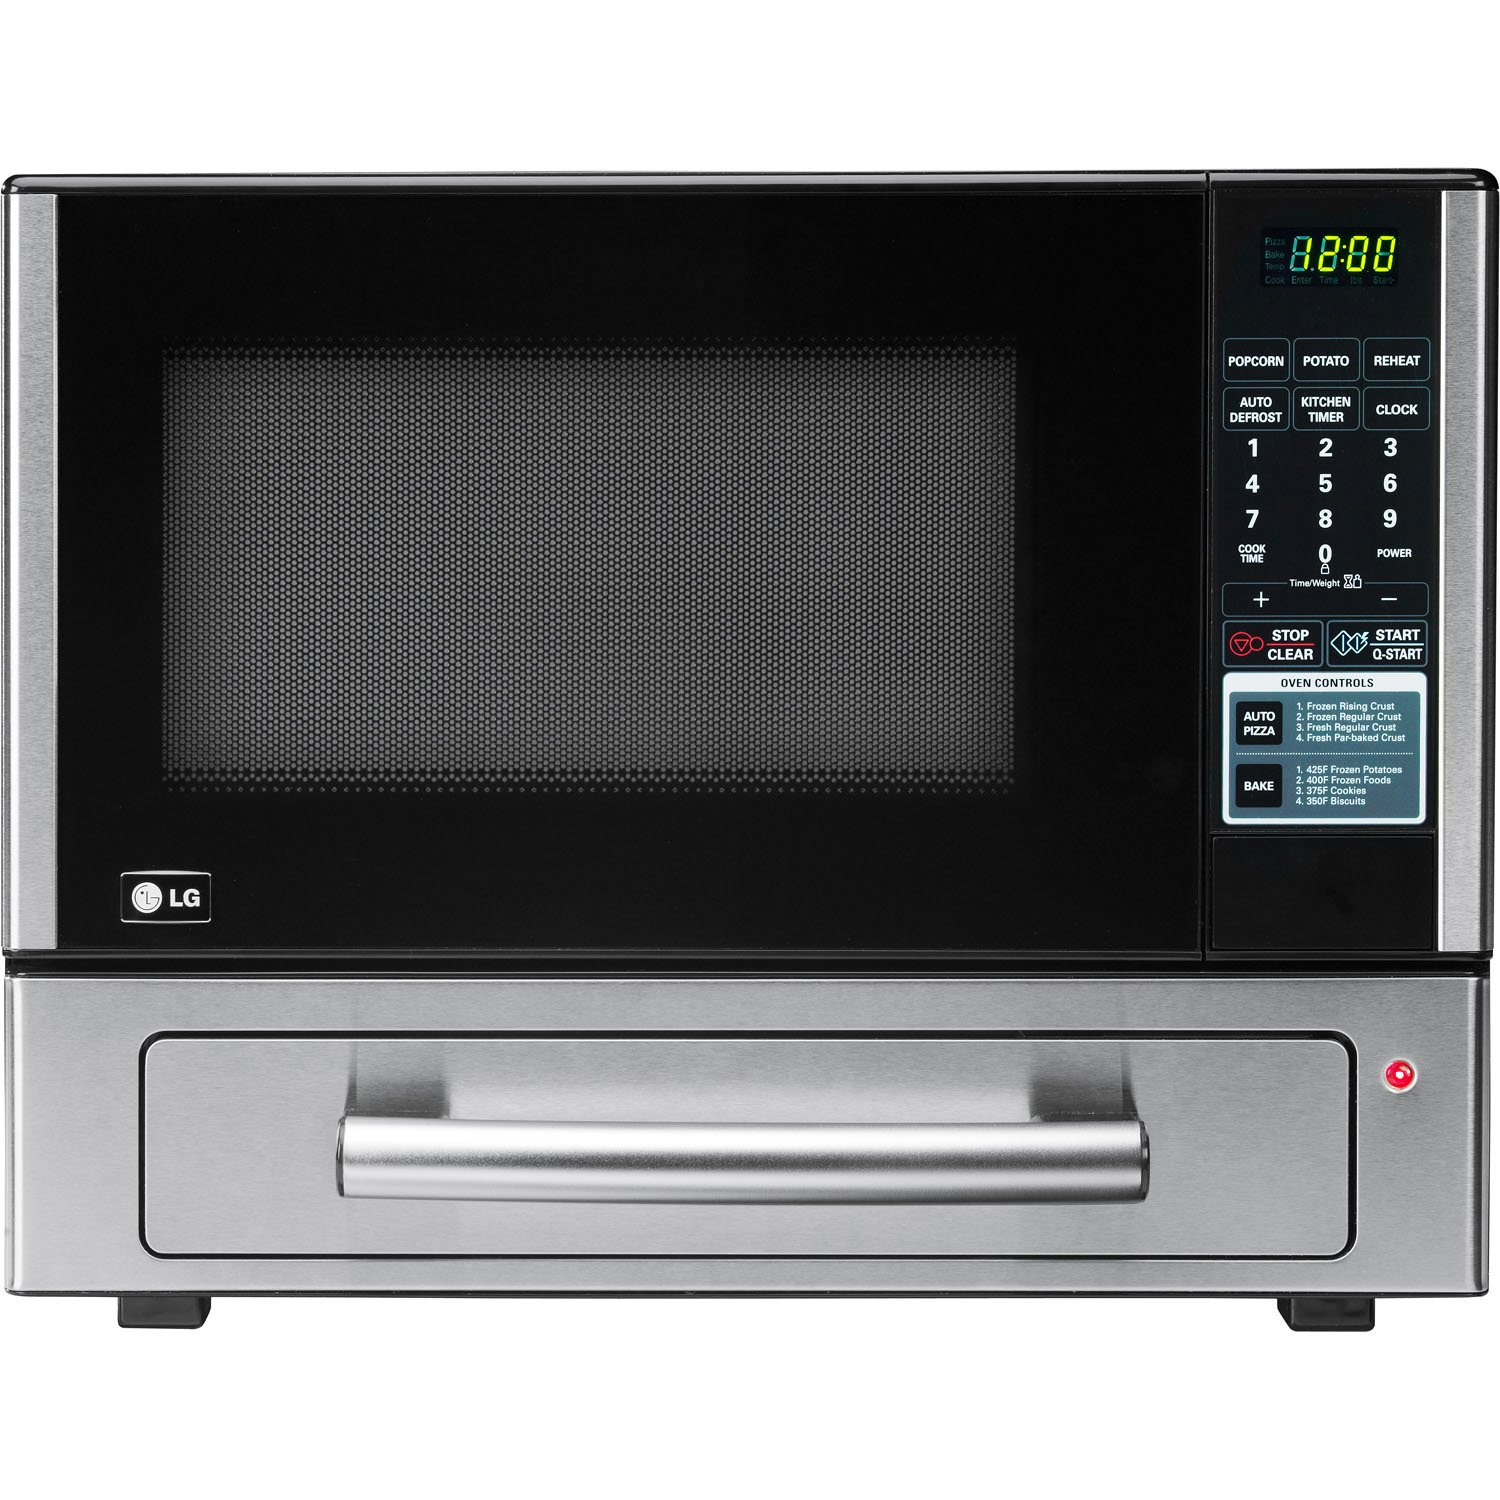 Countertop Oven Best : ... Cu Ft Counter Top Combo Microwave and Baking Oven, Stainless Steel